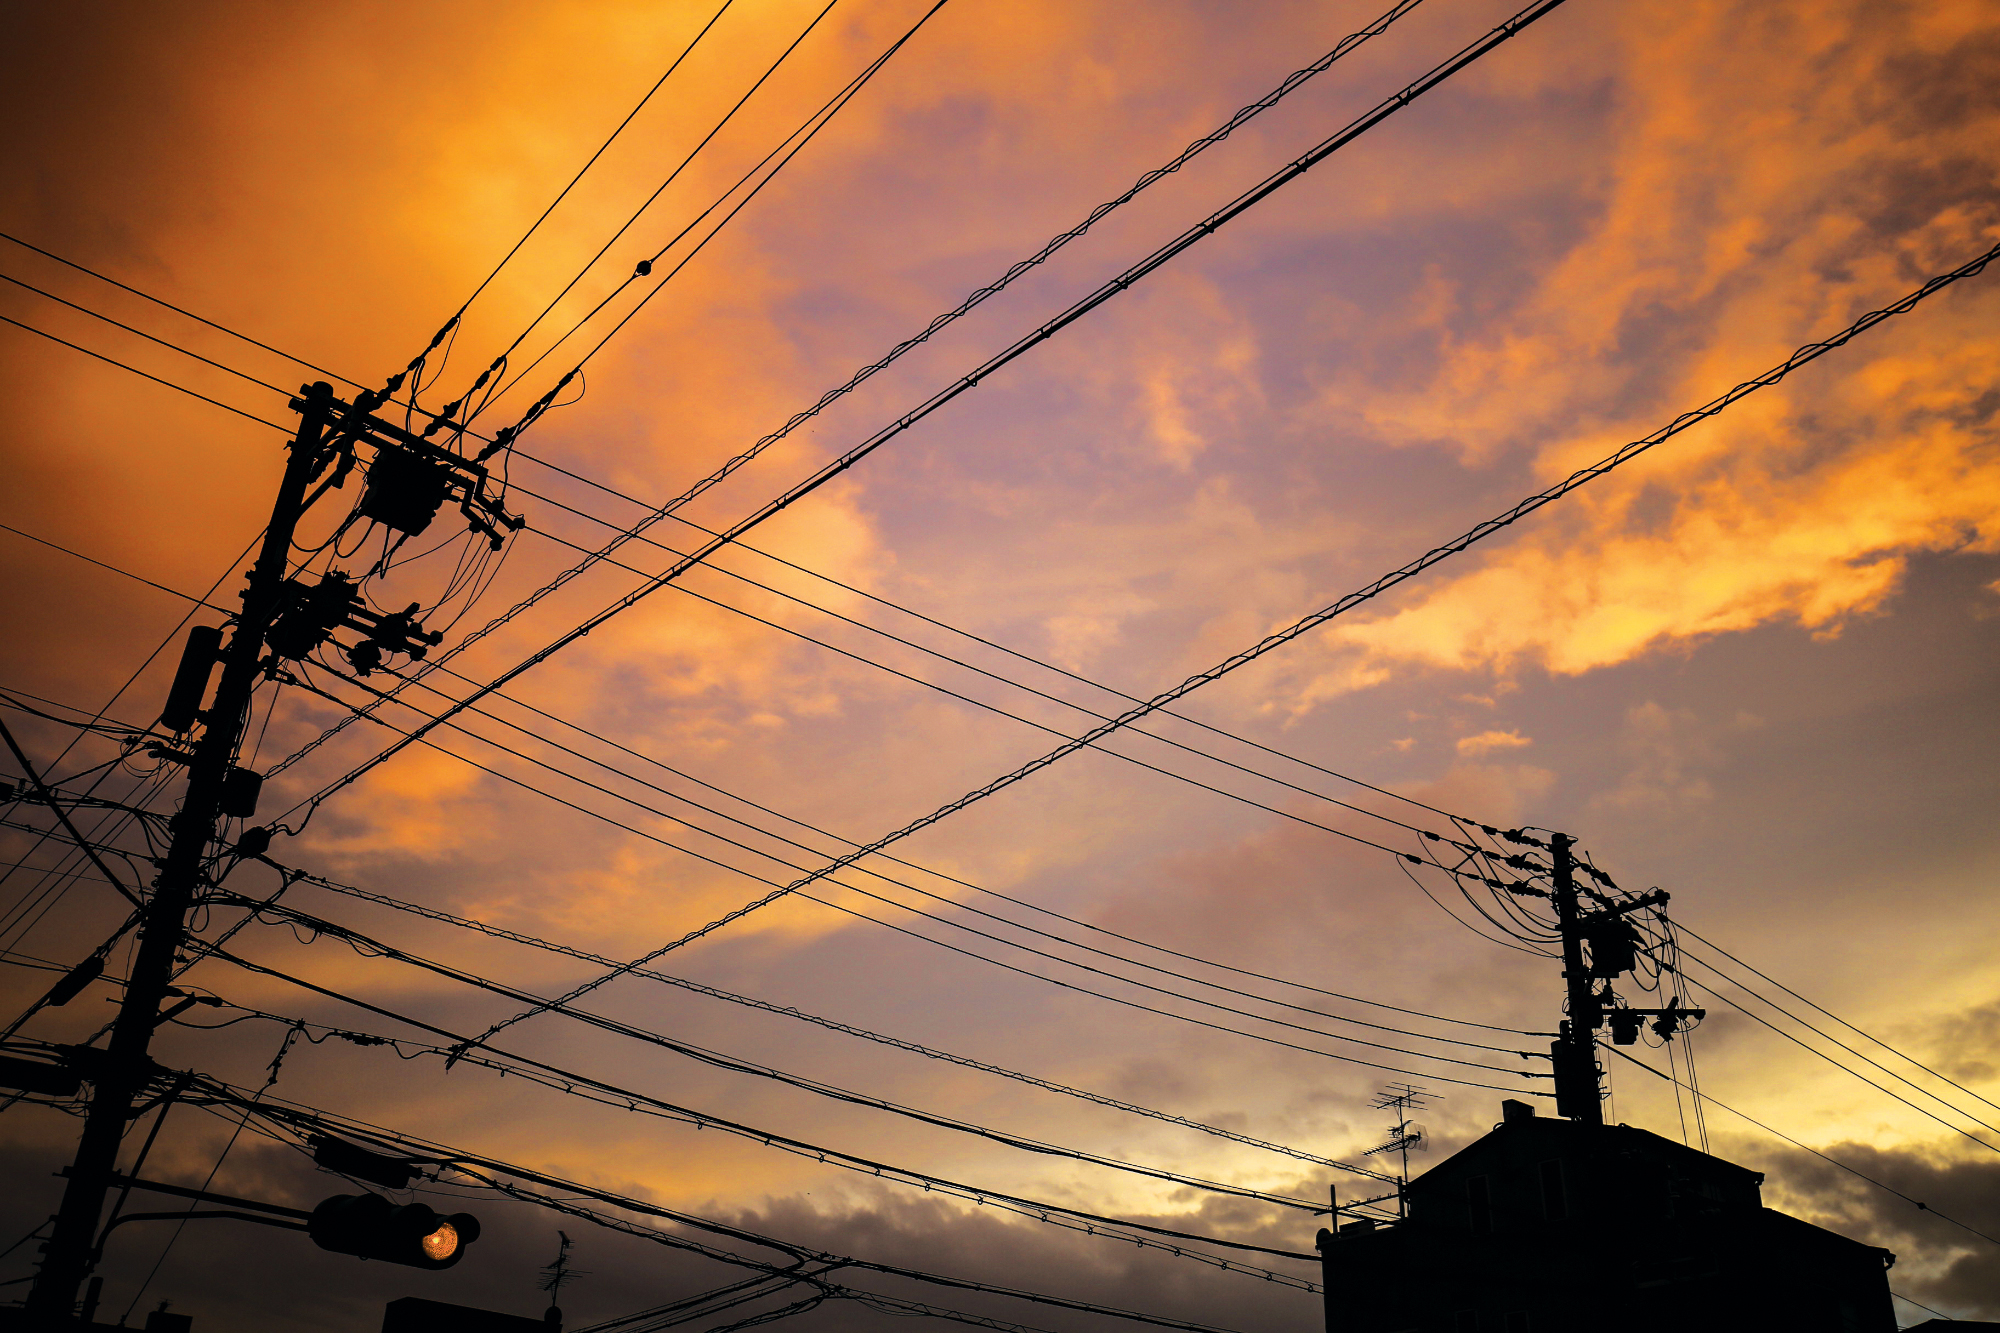 Beautiful, soft, image taken of a sky at sunset with symmetrical street wires under it. Taken in Kyoto, Japan